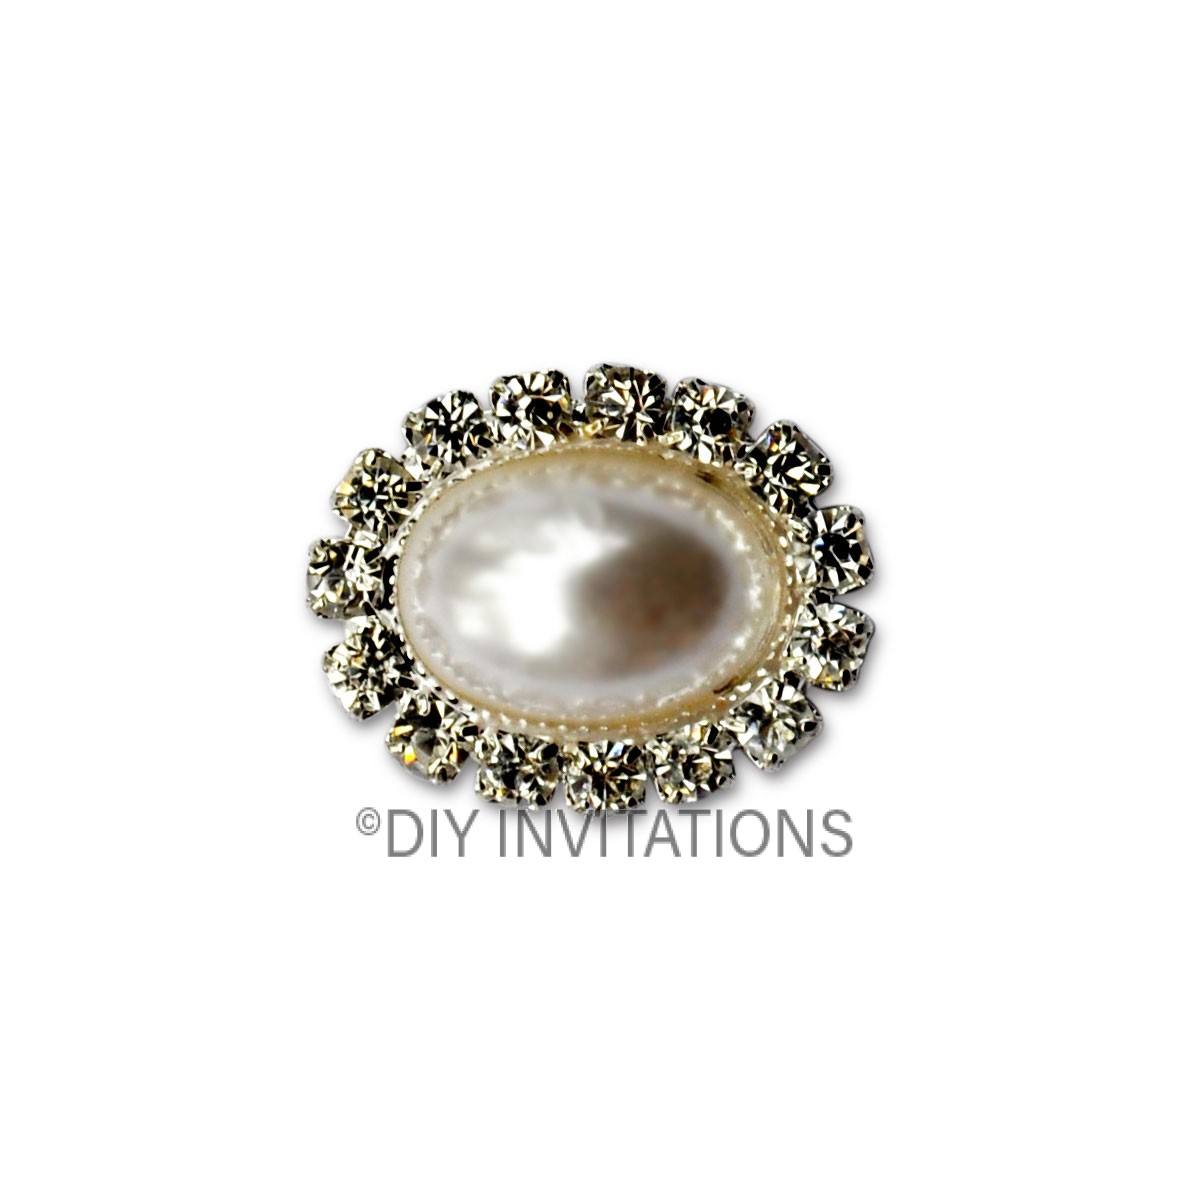 Self Adhesive Oval Pearl Cluster